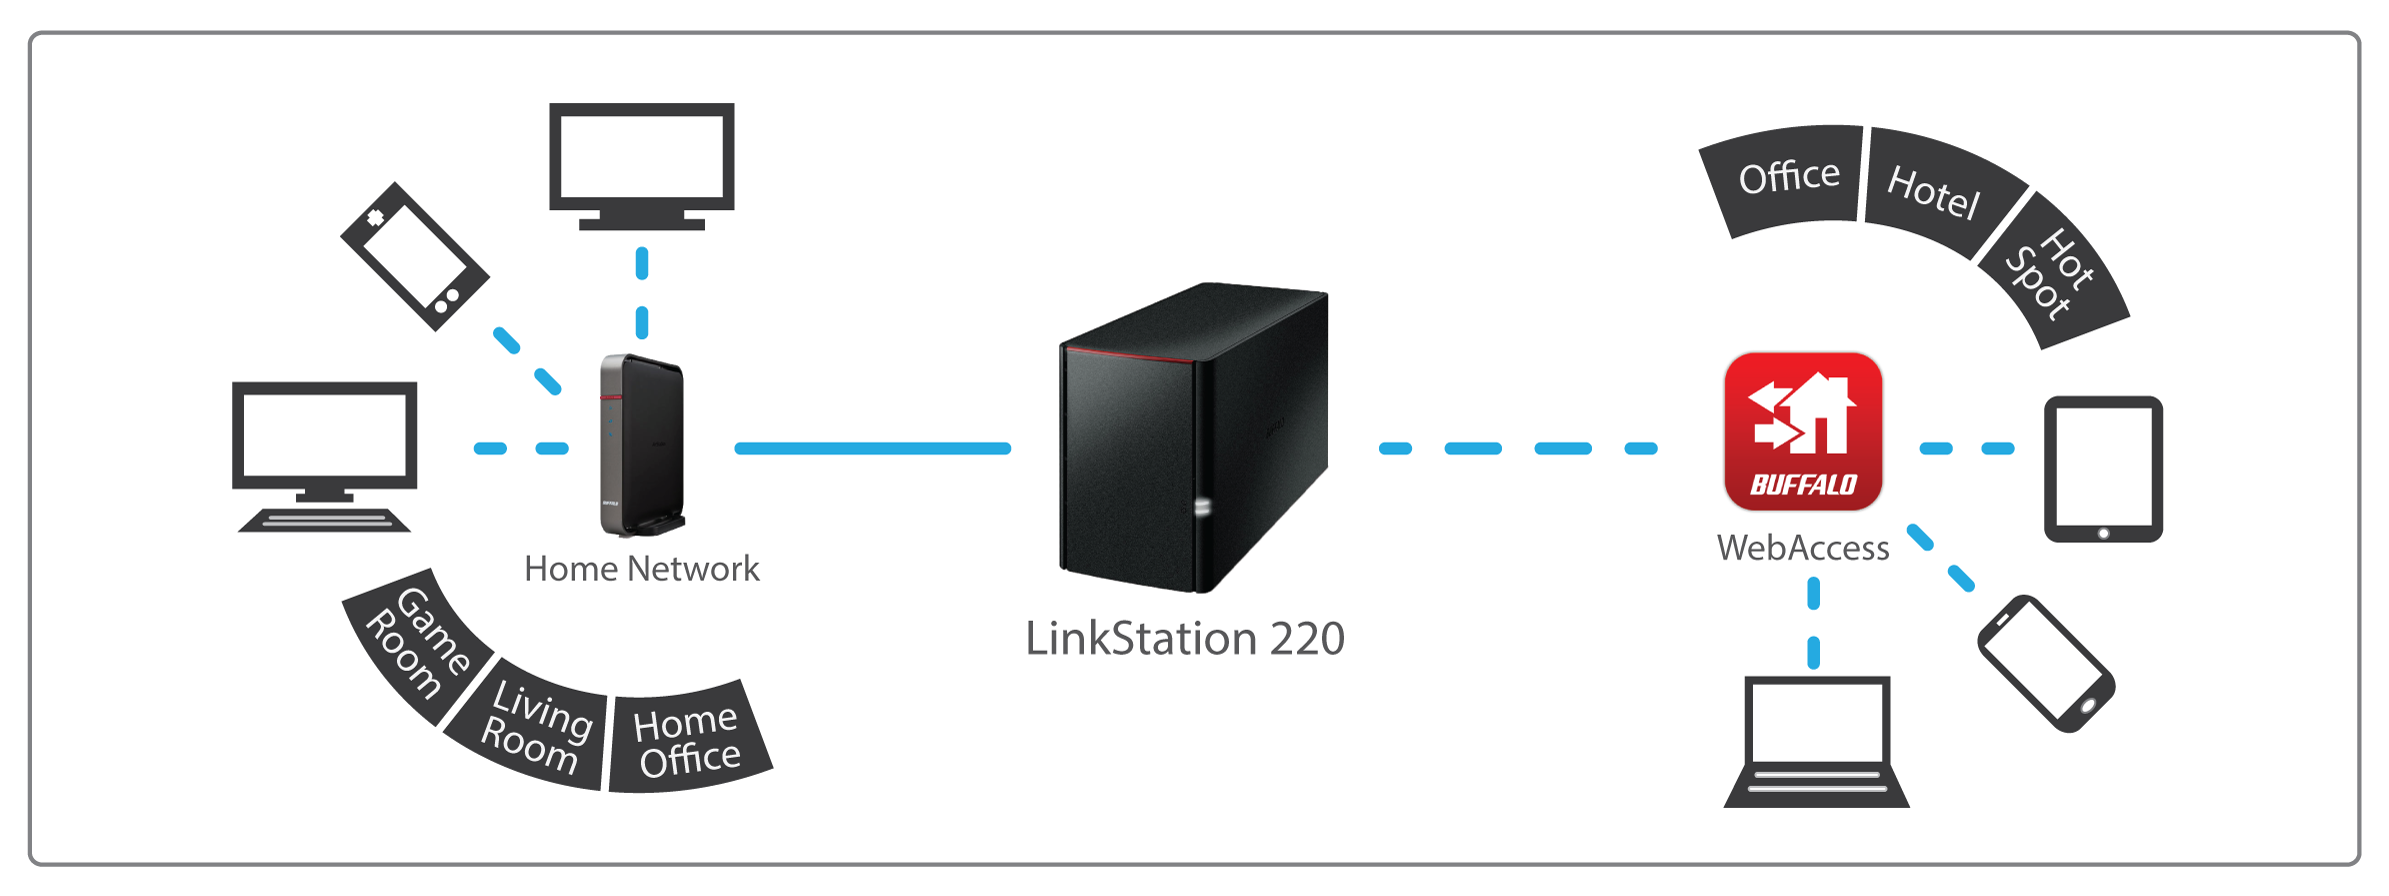 linkstation u2122 220